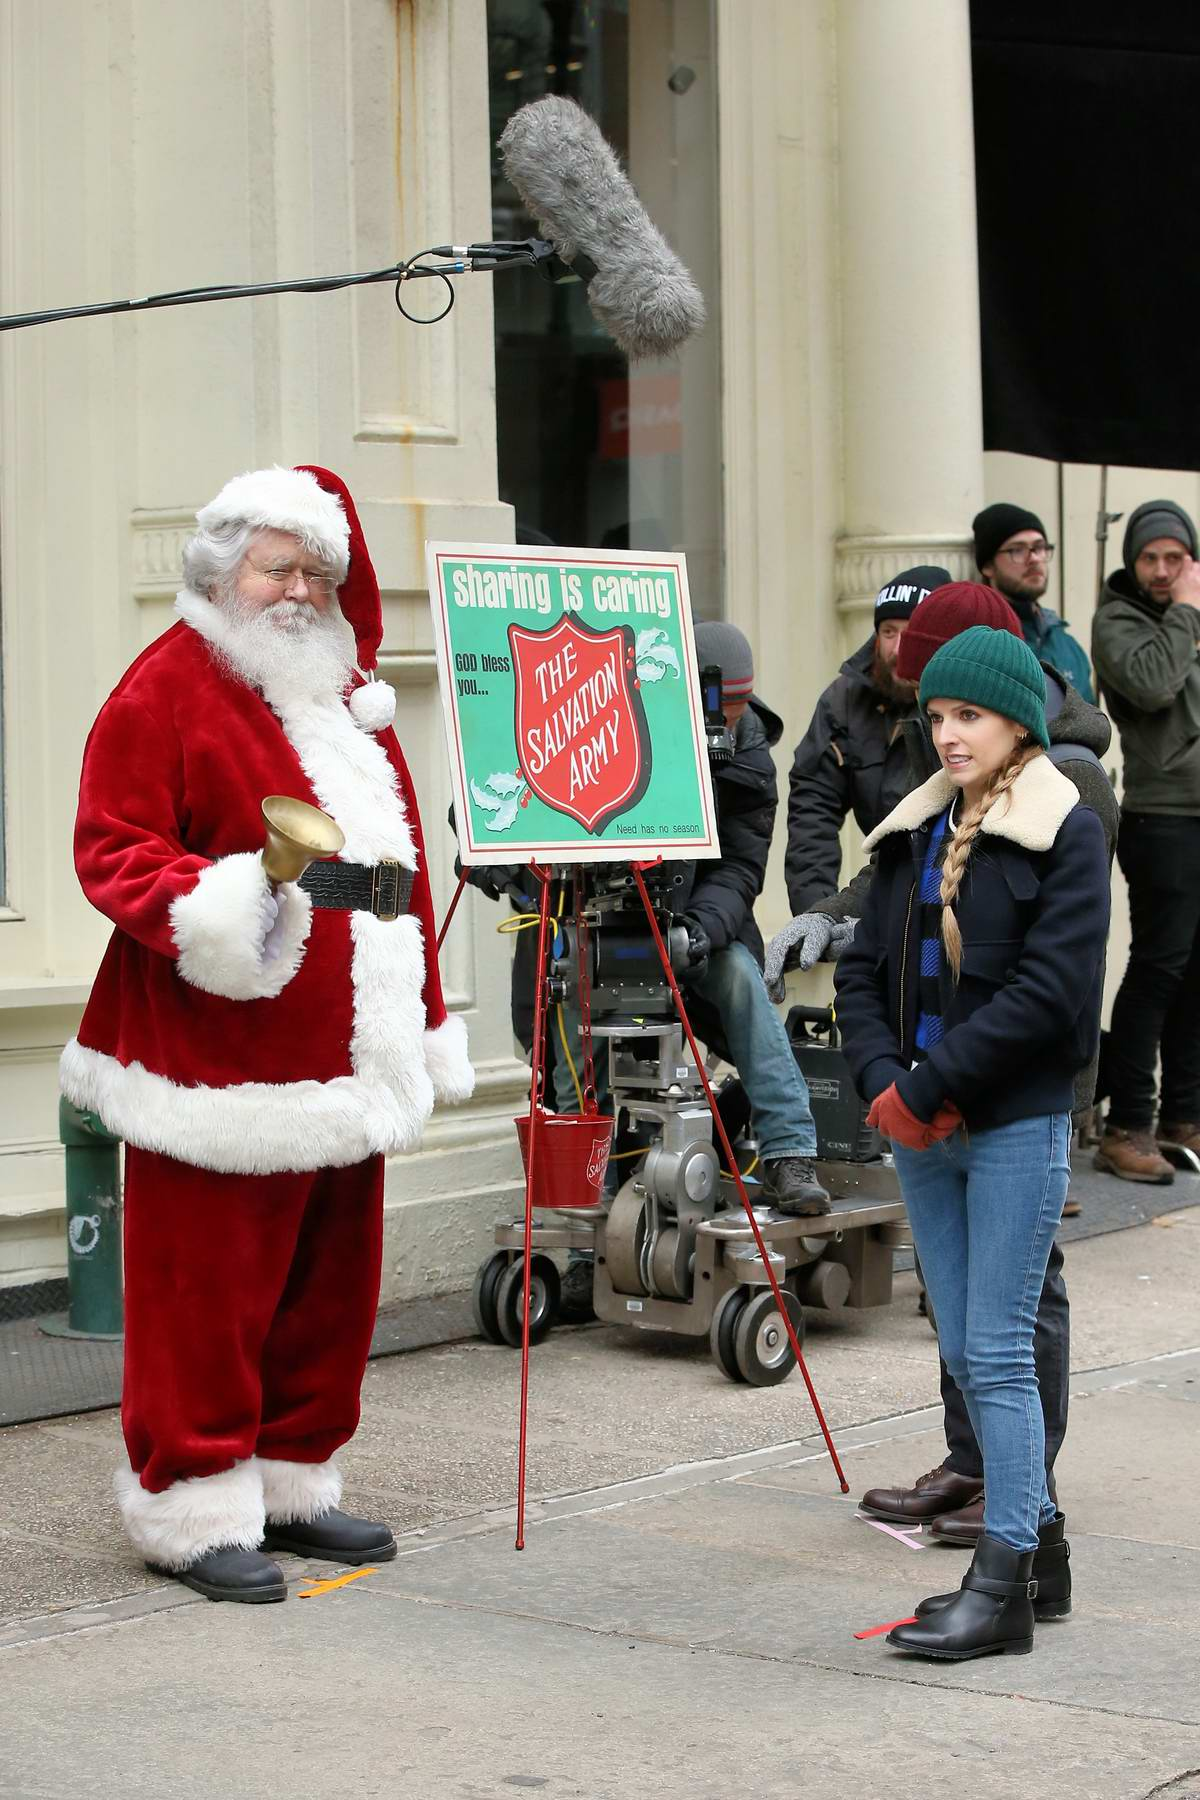 Anna Kendrick spotted while filming scenes with Santa Claus on the set 'Love Life' in New York City